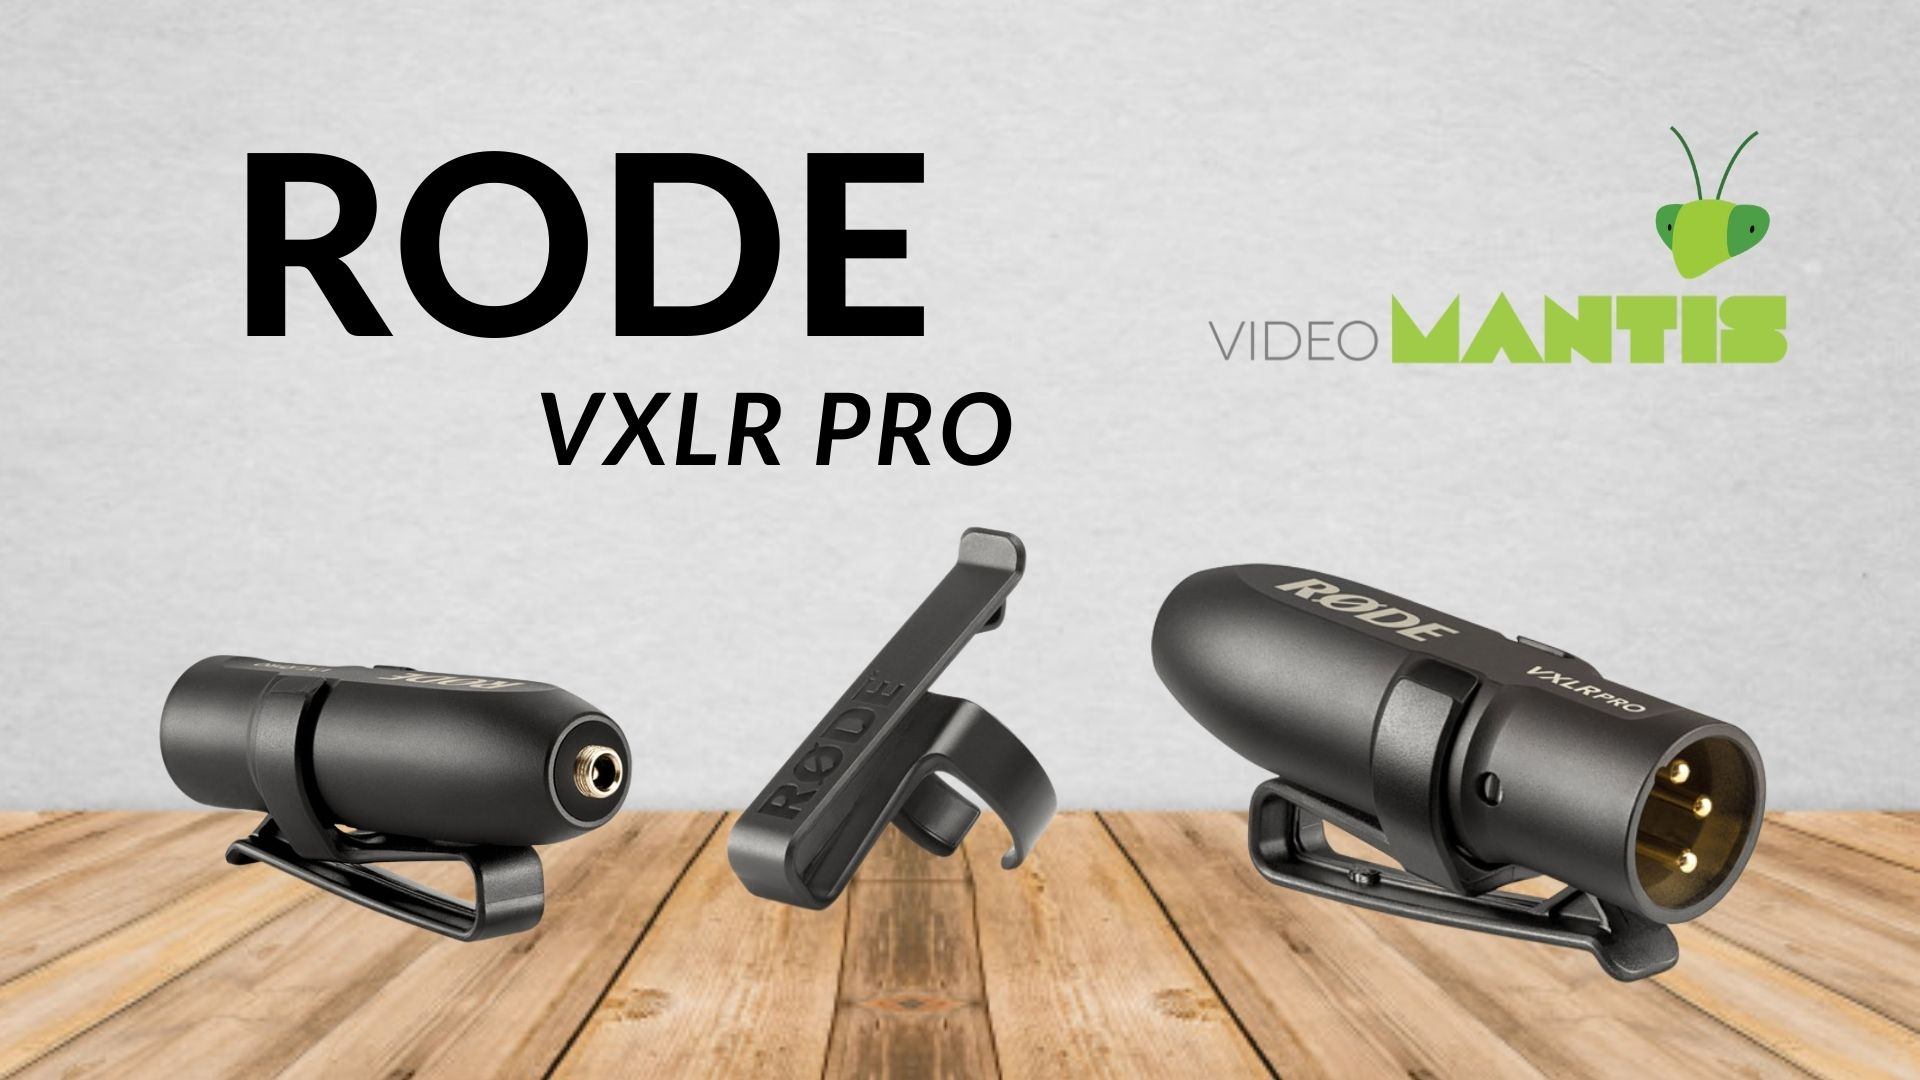 Introducing the VXLR Pro from Rode!